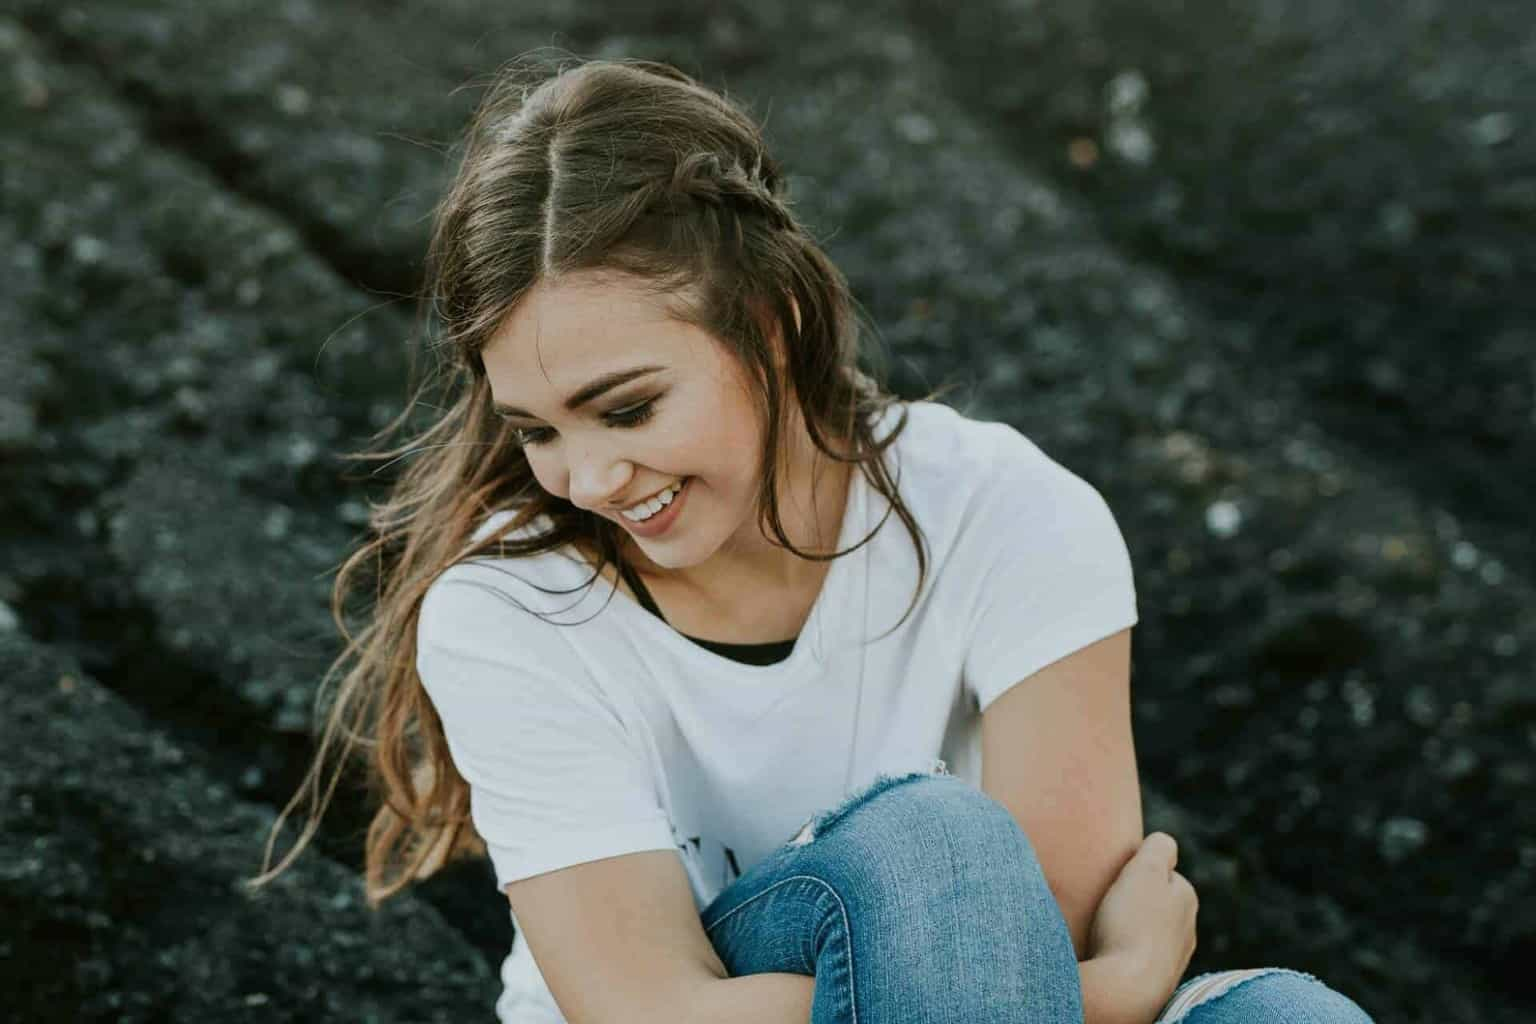 93 Interesting Questions to Ask a Girl - Spark engaging